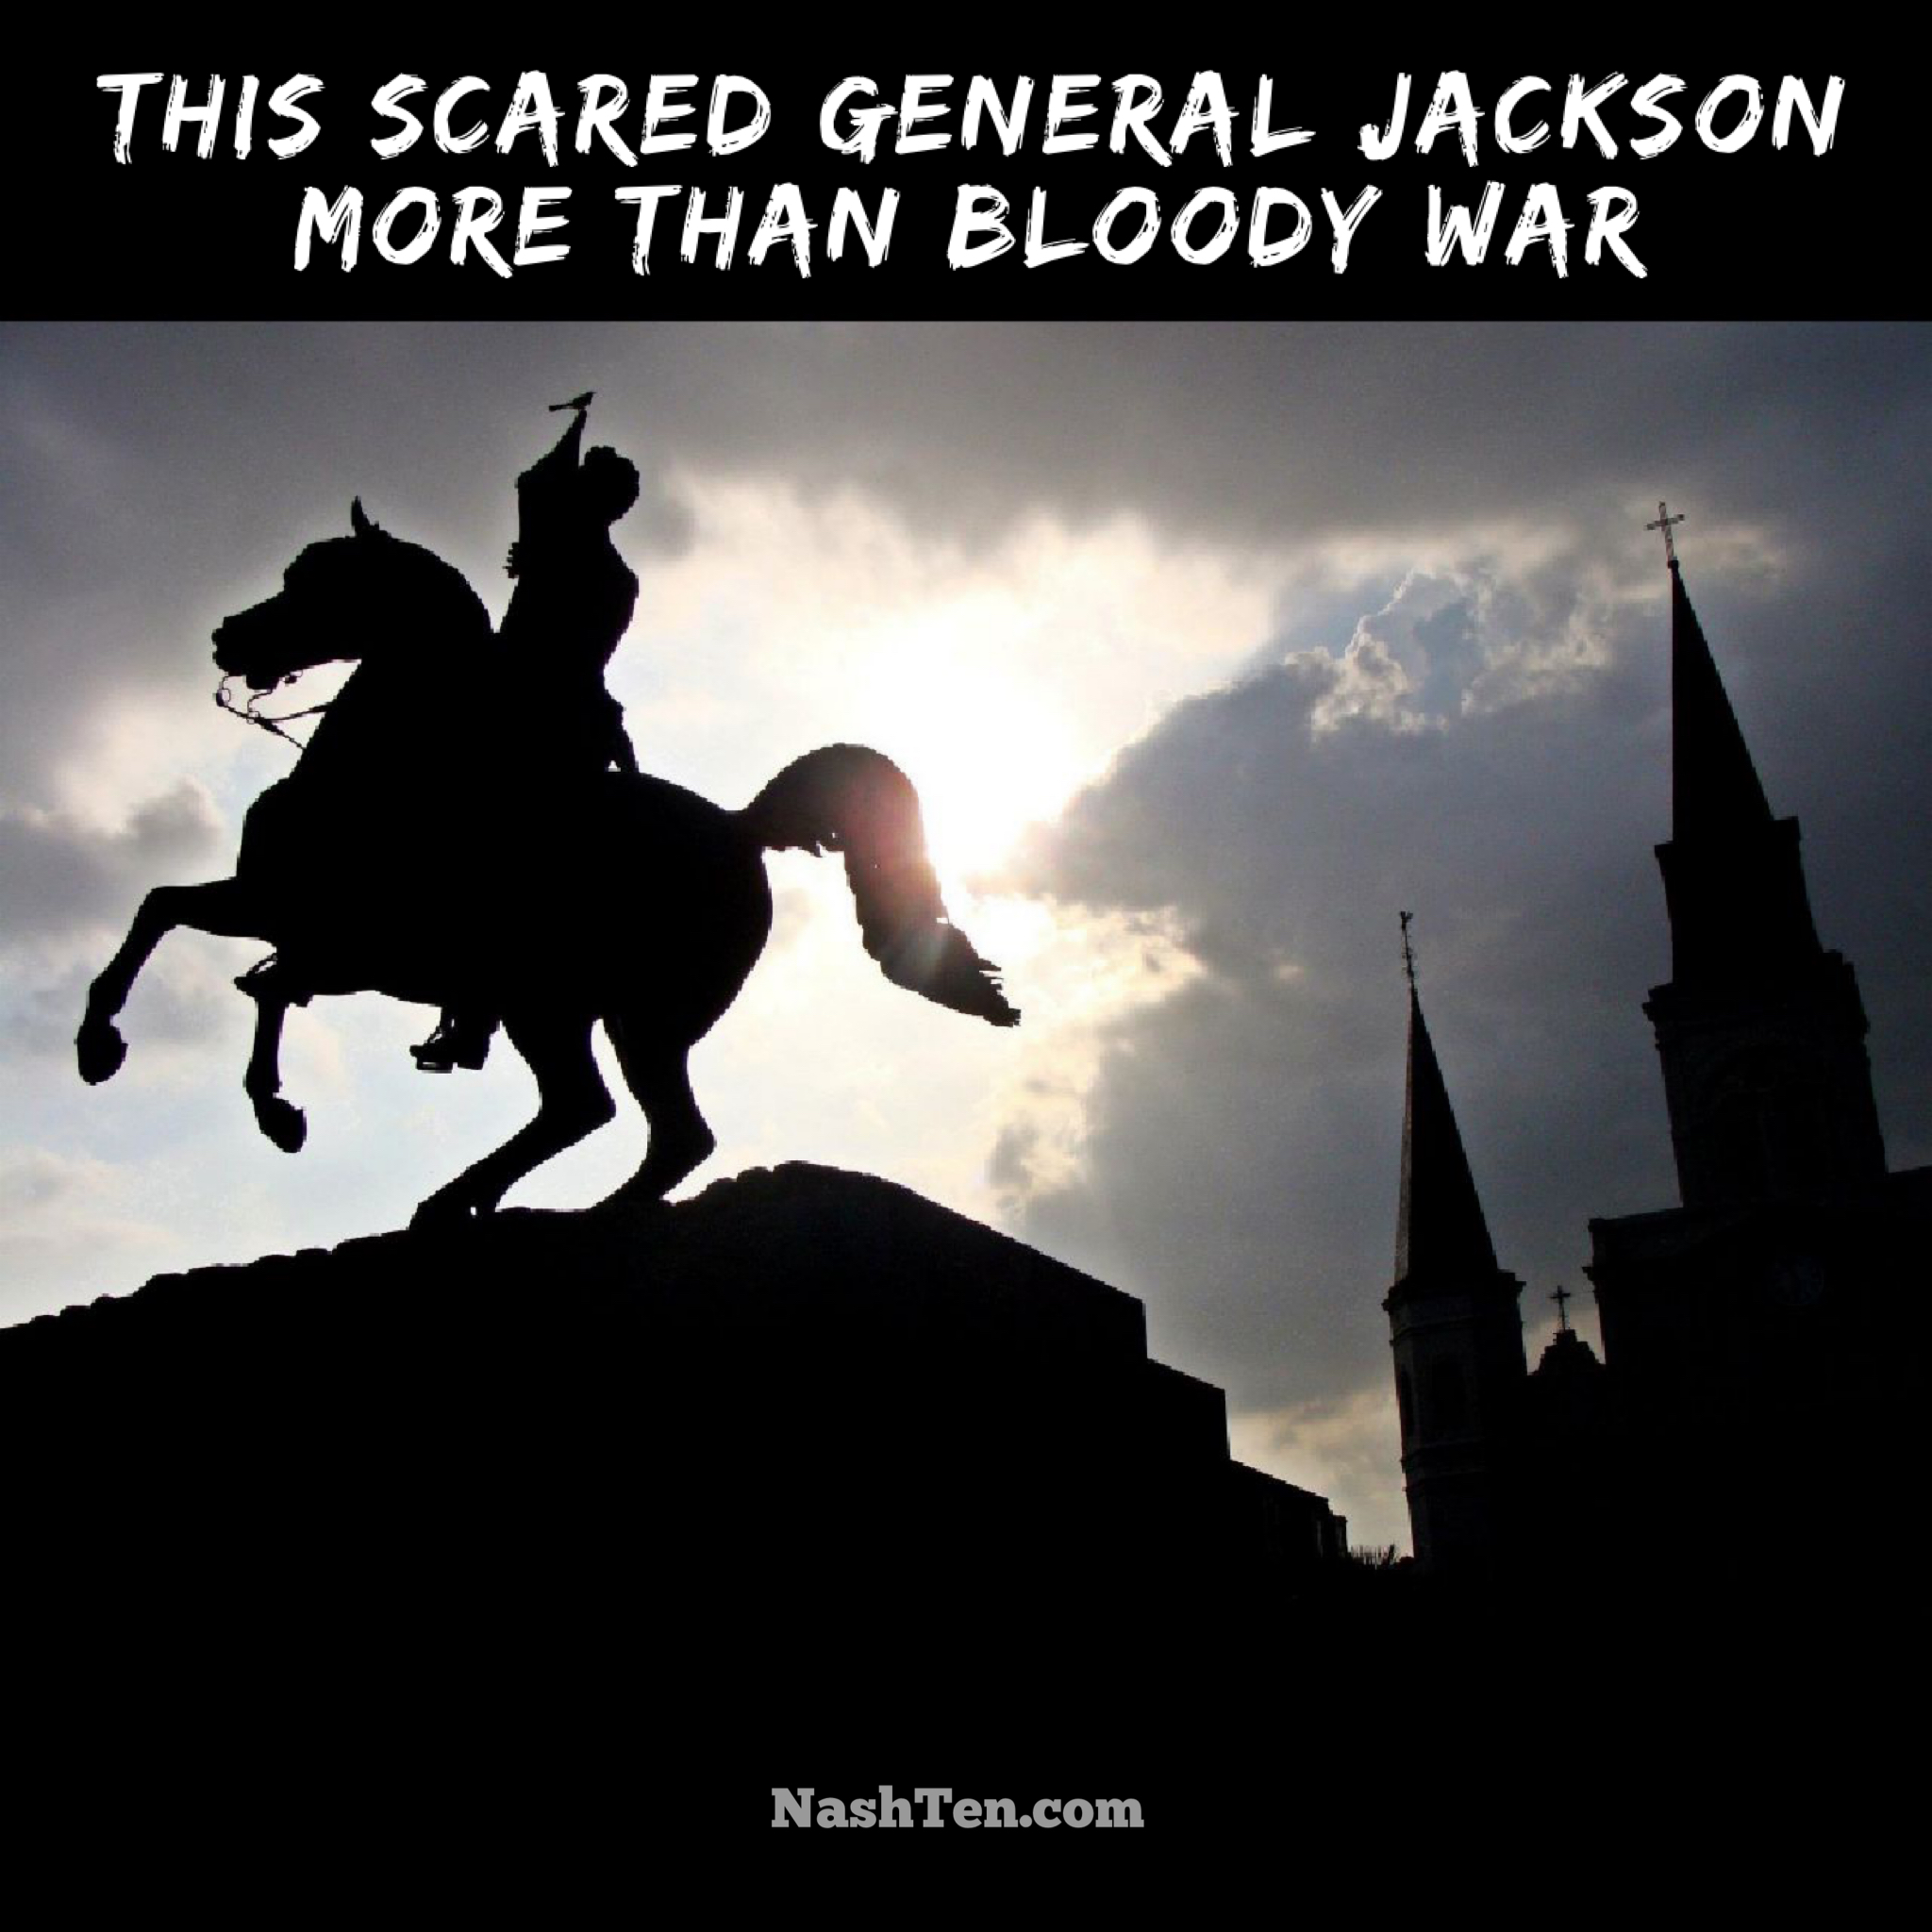 This Scared General Jackson more than Bloody War